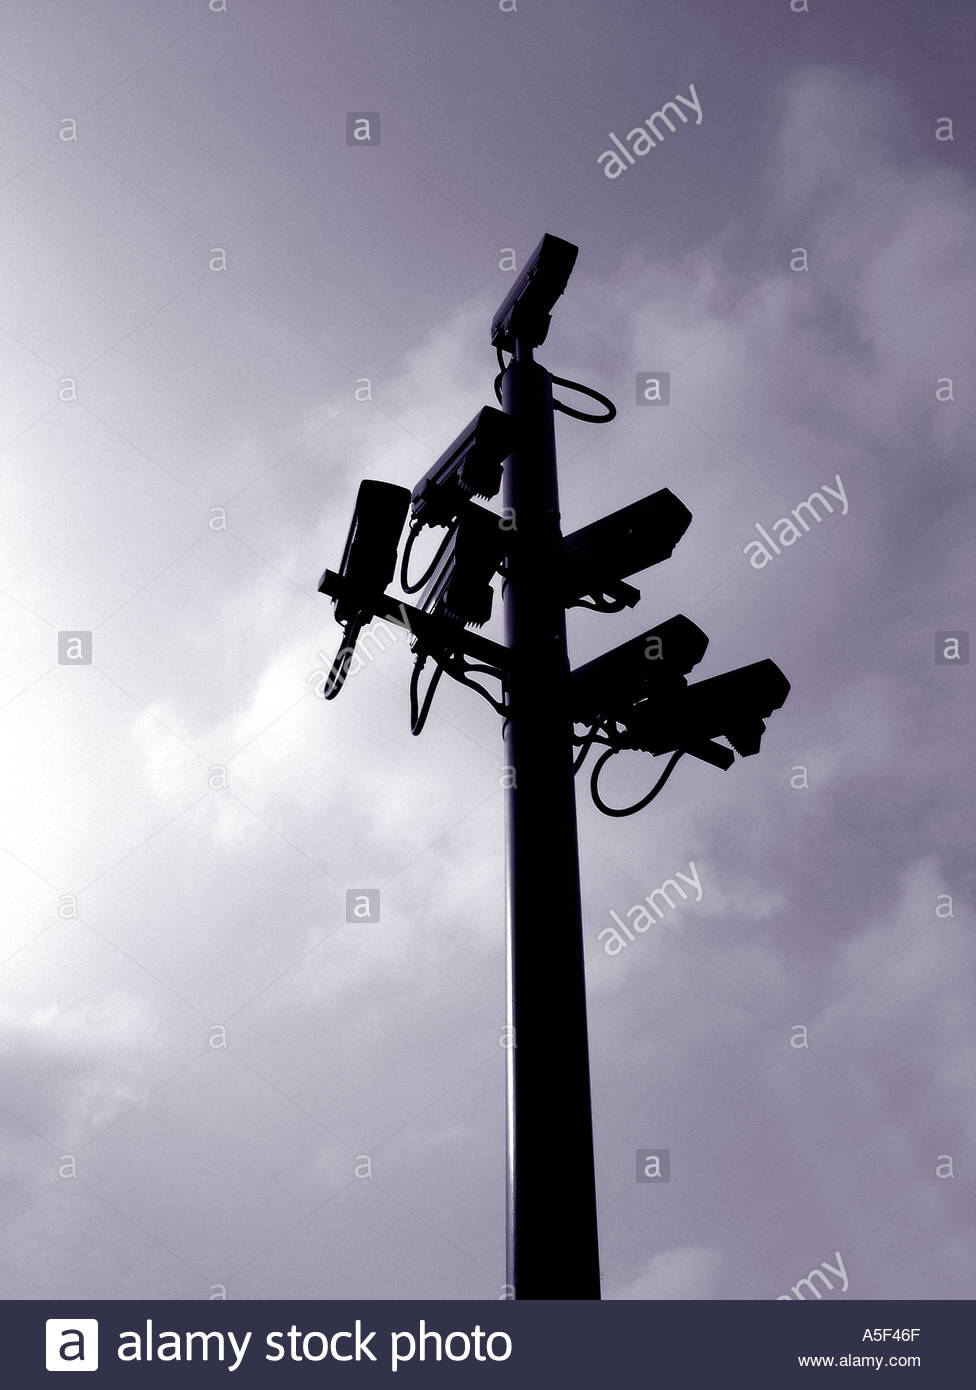 Congestion charging CCTV cameras in London - Stock Image